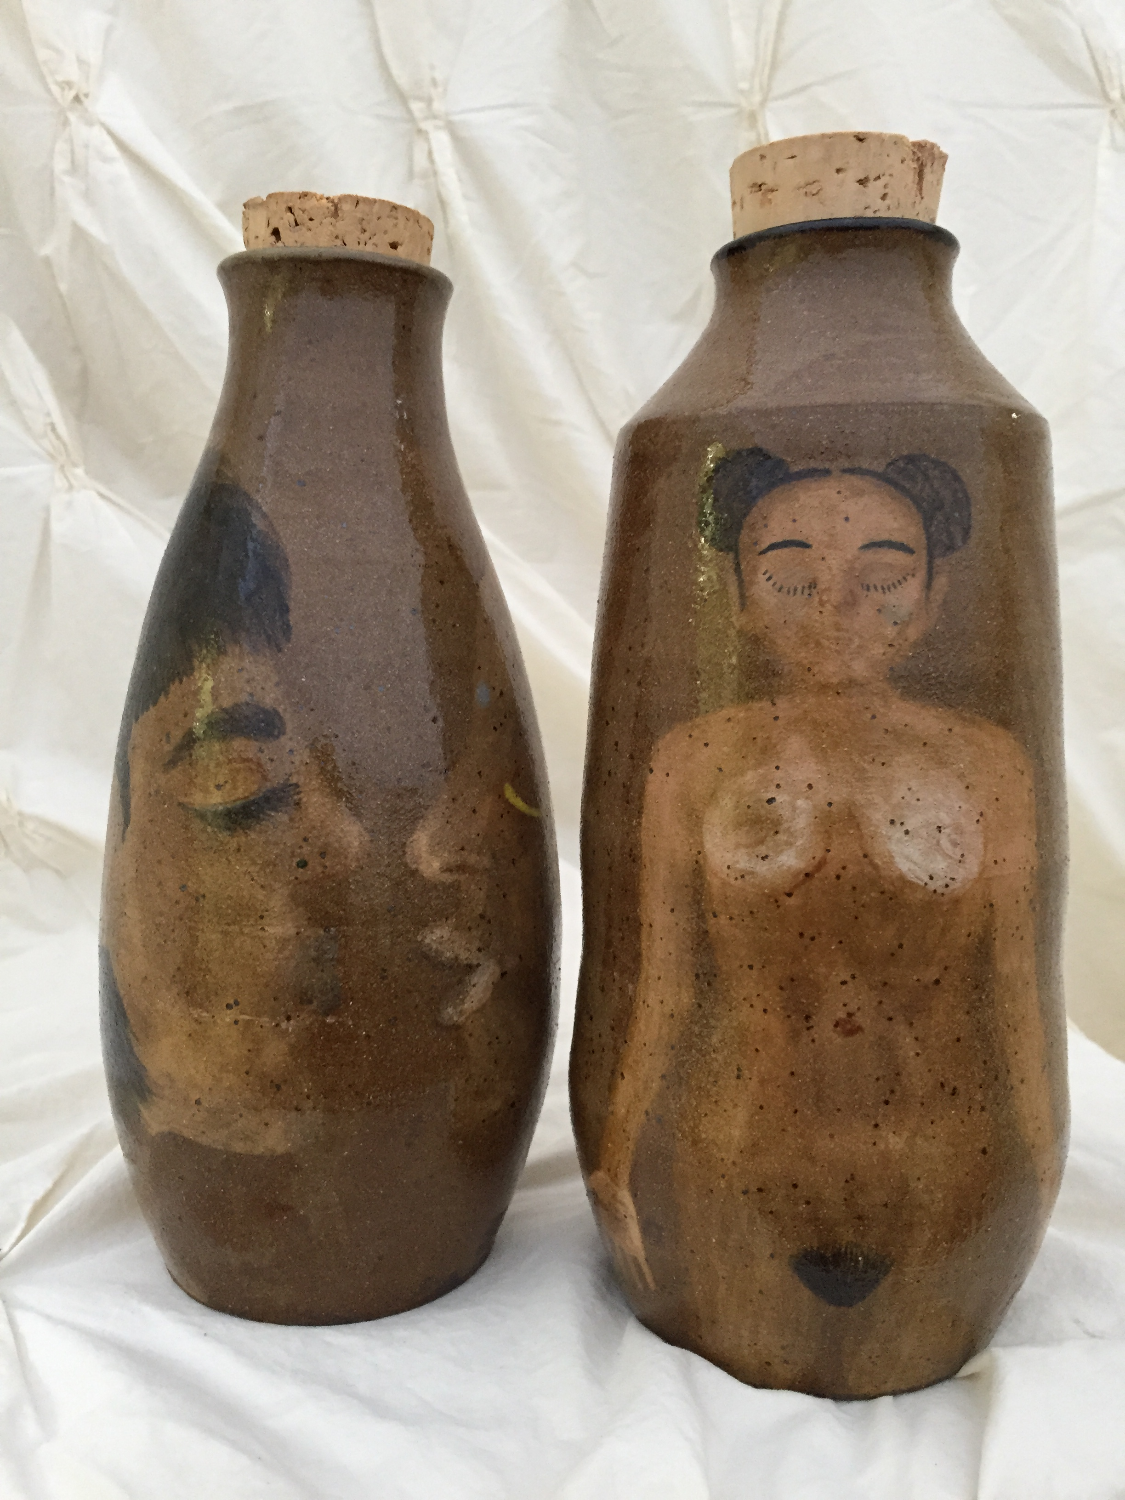 2 painted bottles